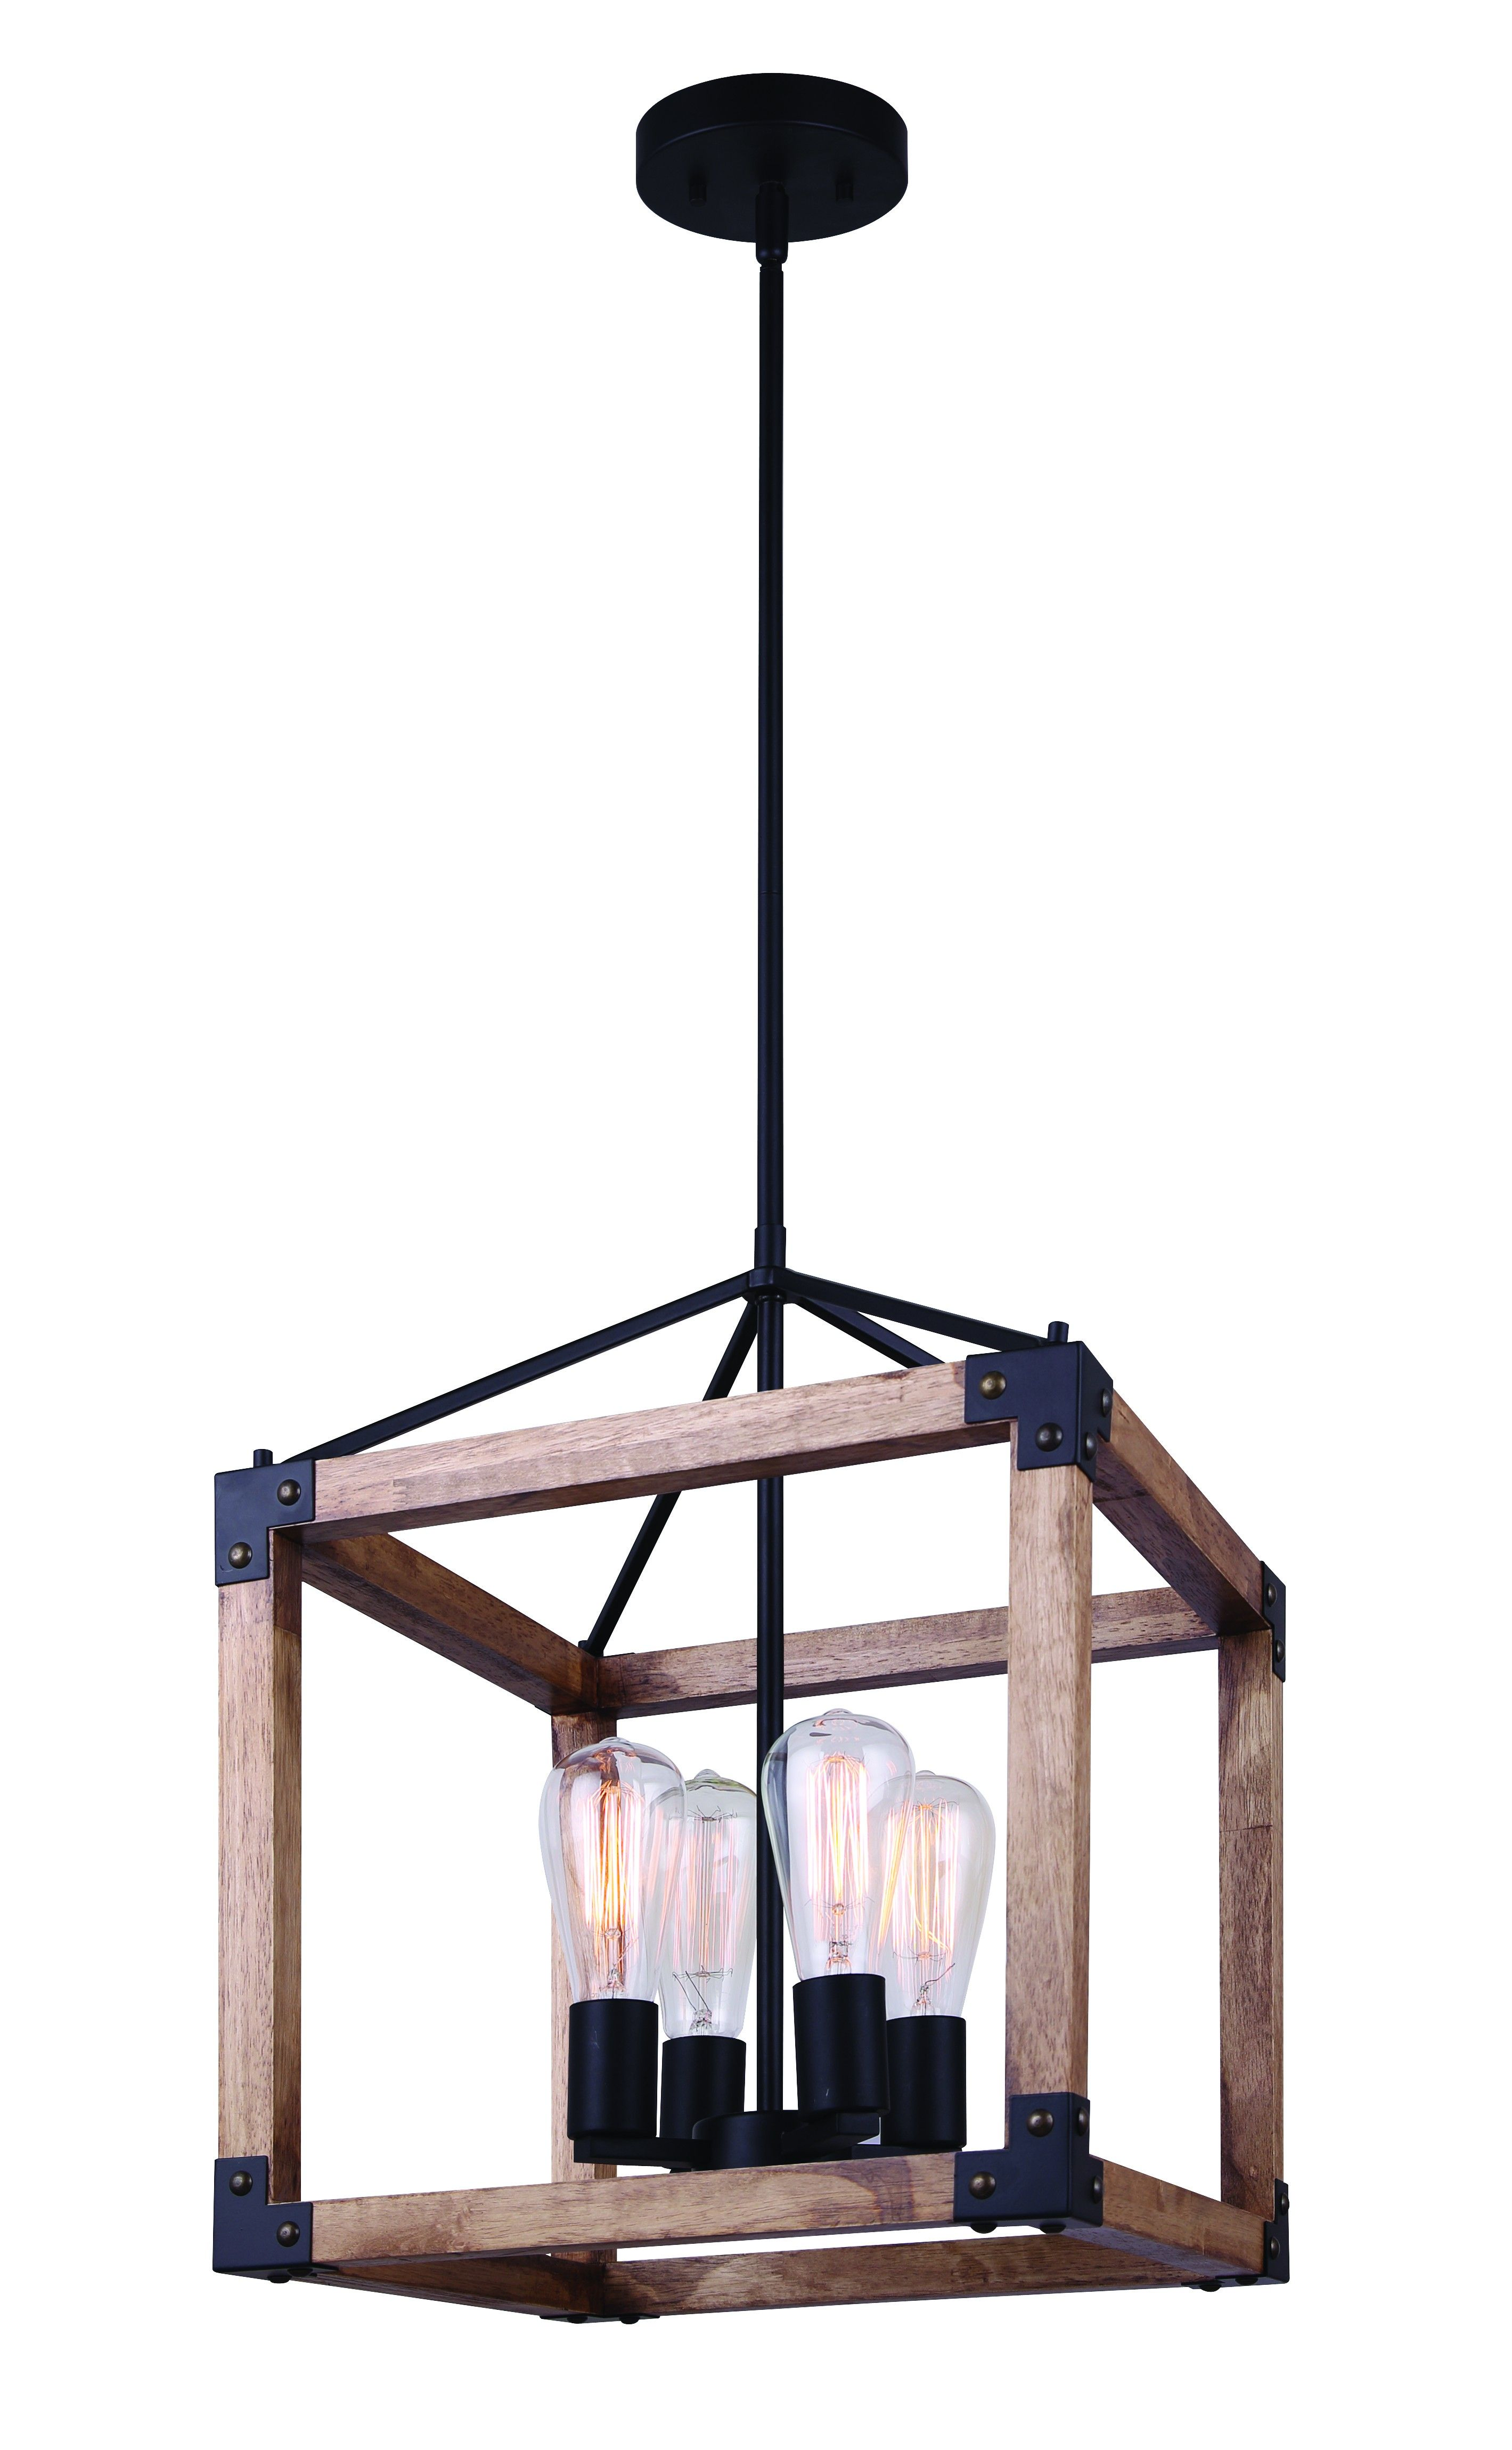 Canarm Ich756a04bkw14 Moss 4 Light Chandelier Black Rustic Chandelier Chandelier Lighting Exterior Light Fixtures